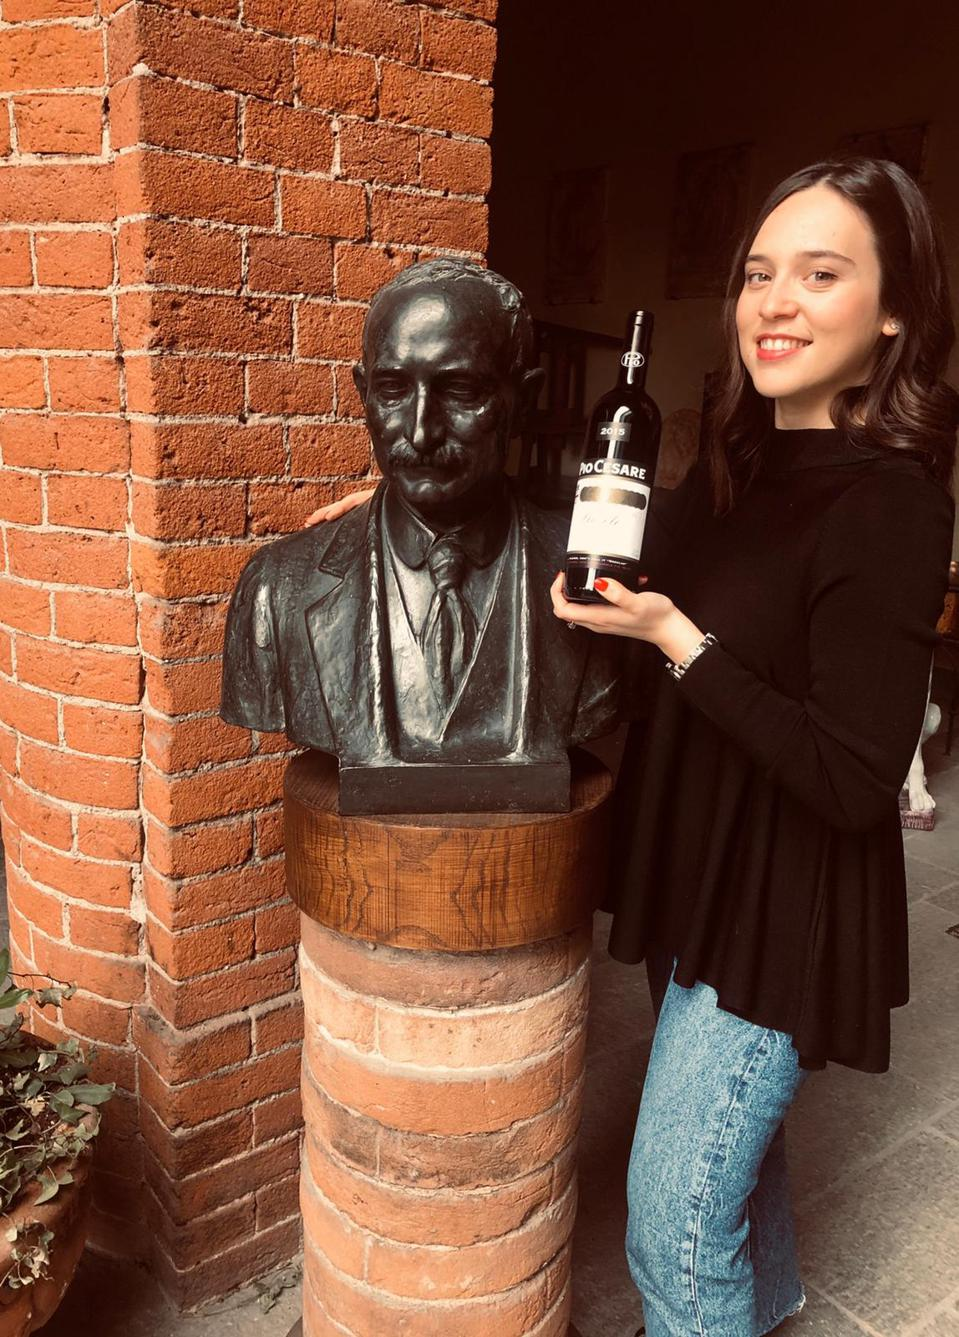 Federica Boffa with a Bust of her Great-Great Grandfather Cesare Pio